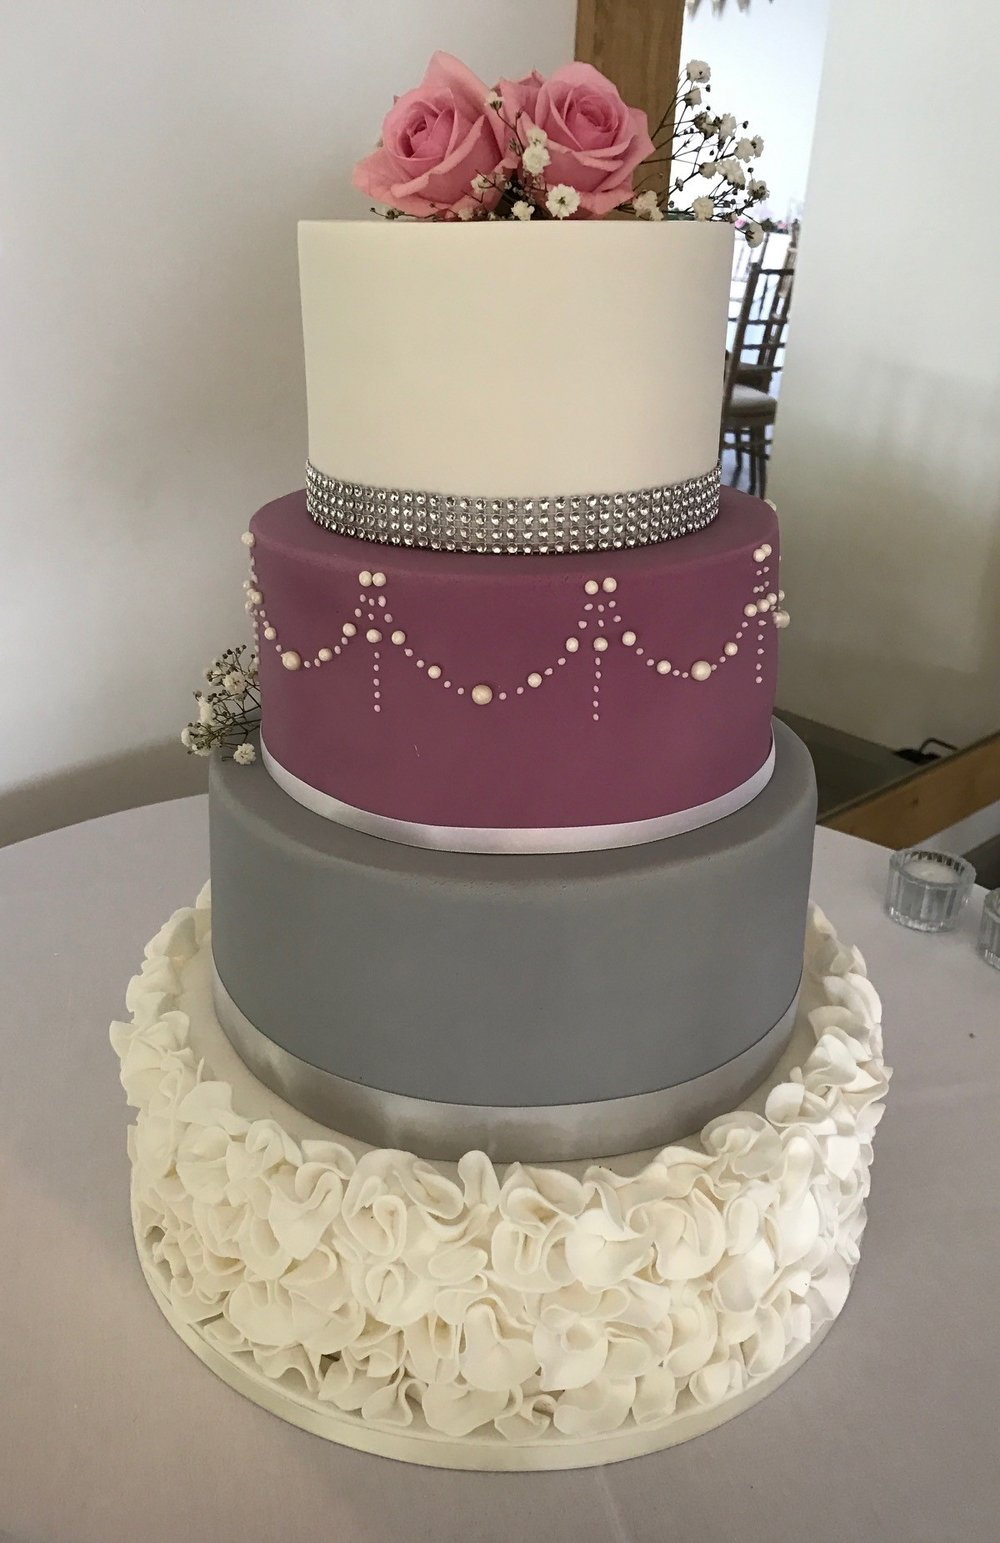 Four tier wedding cake with fondant ruffles, piped pattern and diamonte trim